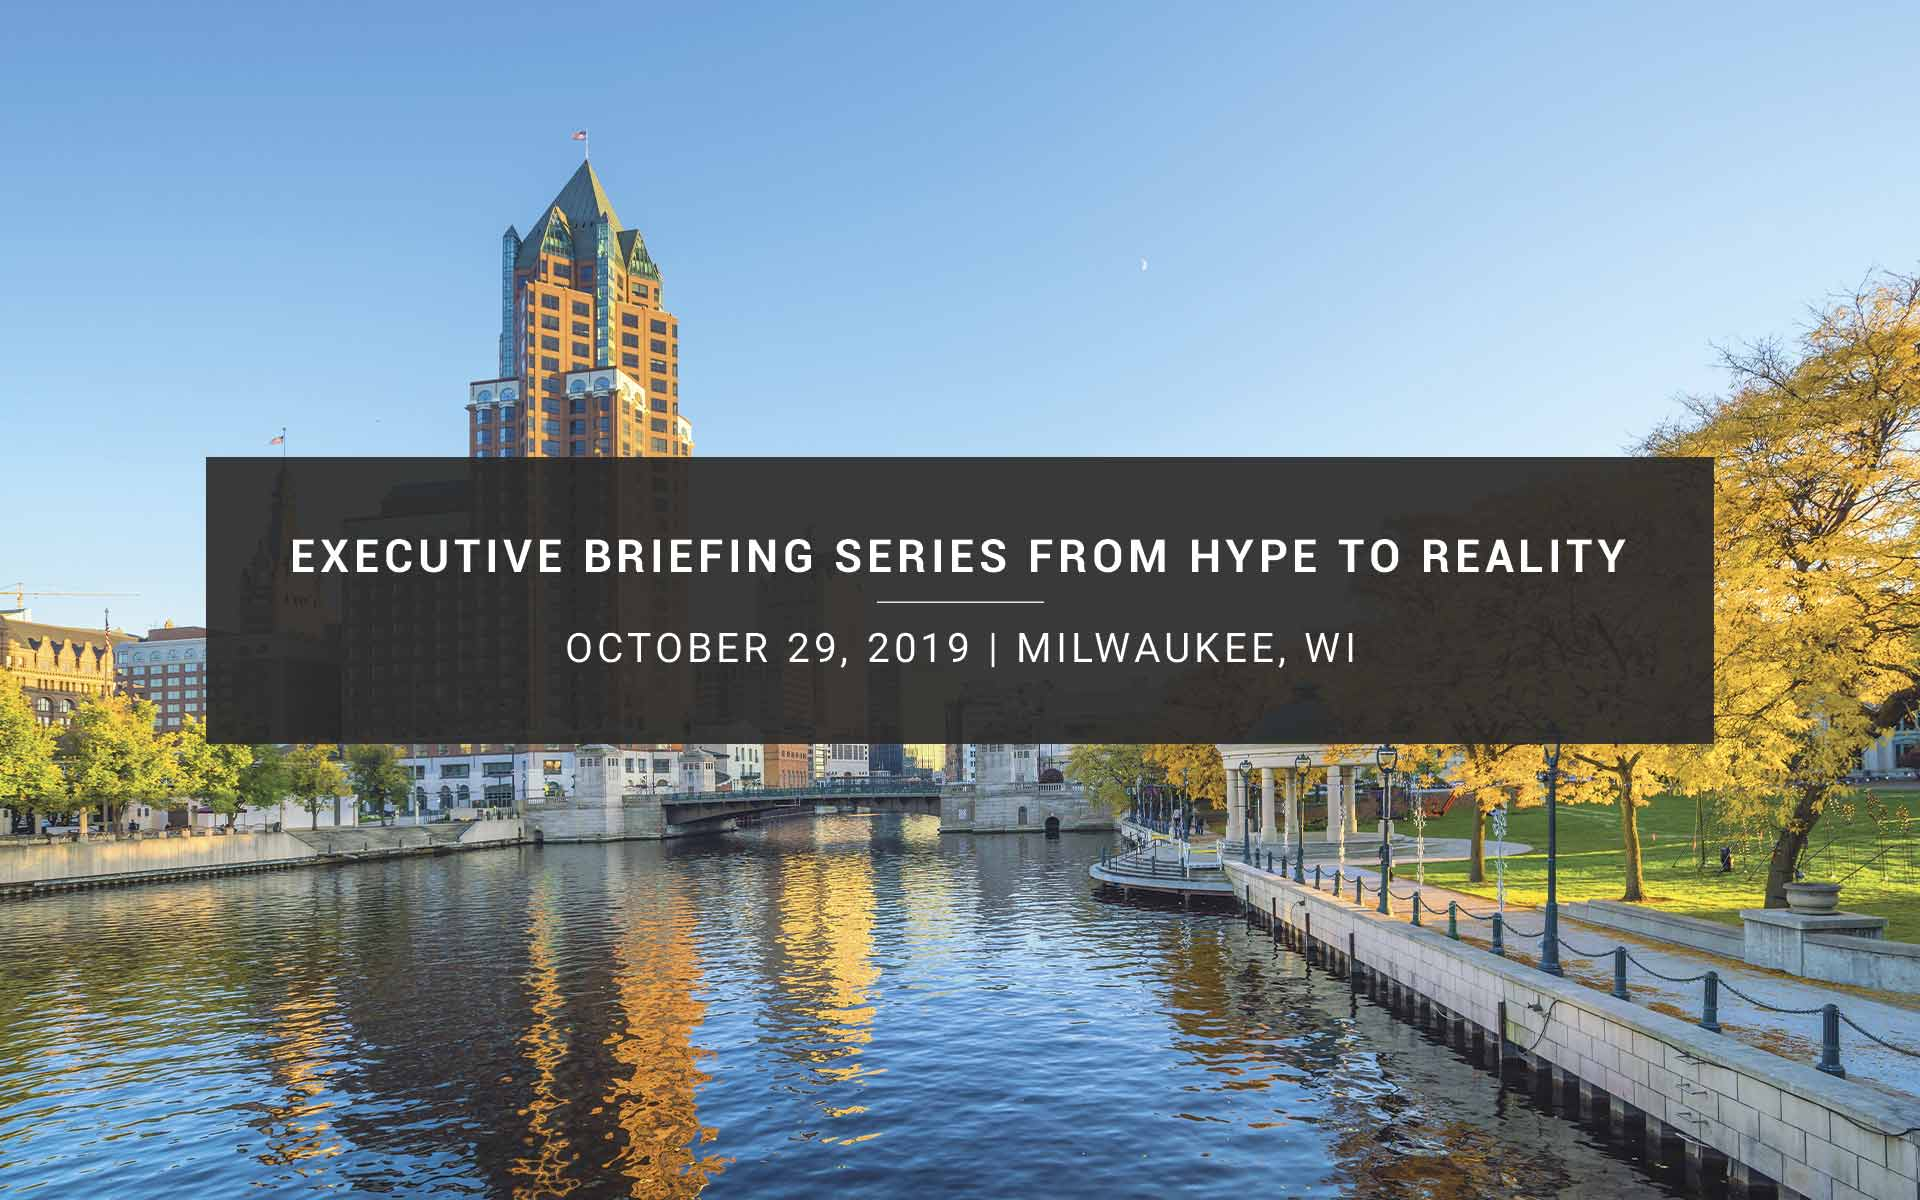 Executive Breifing Series from Hype to Reality